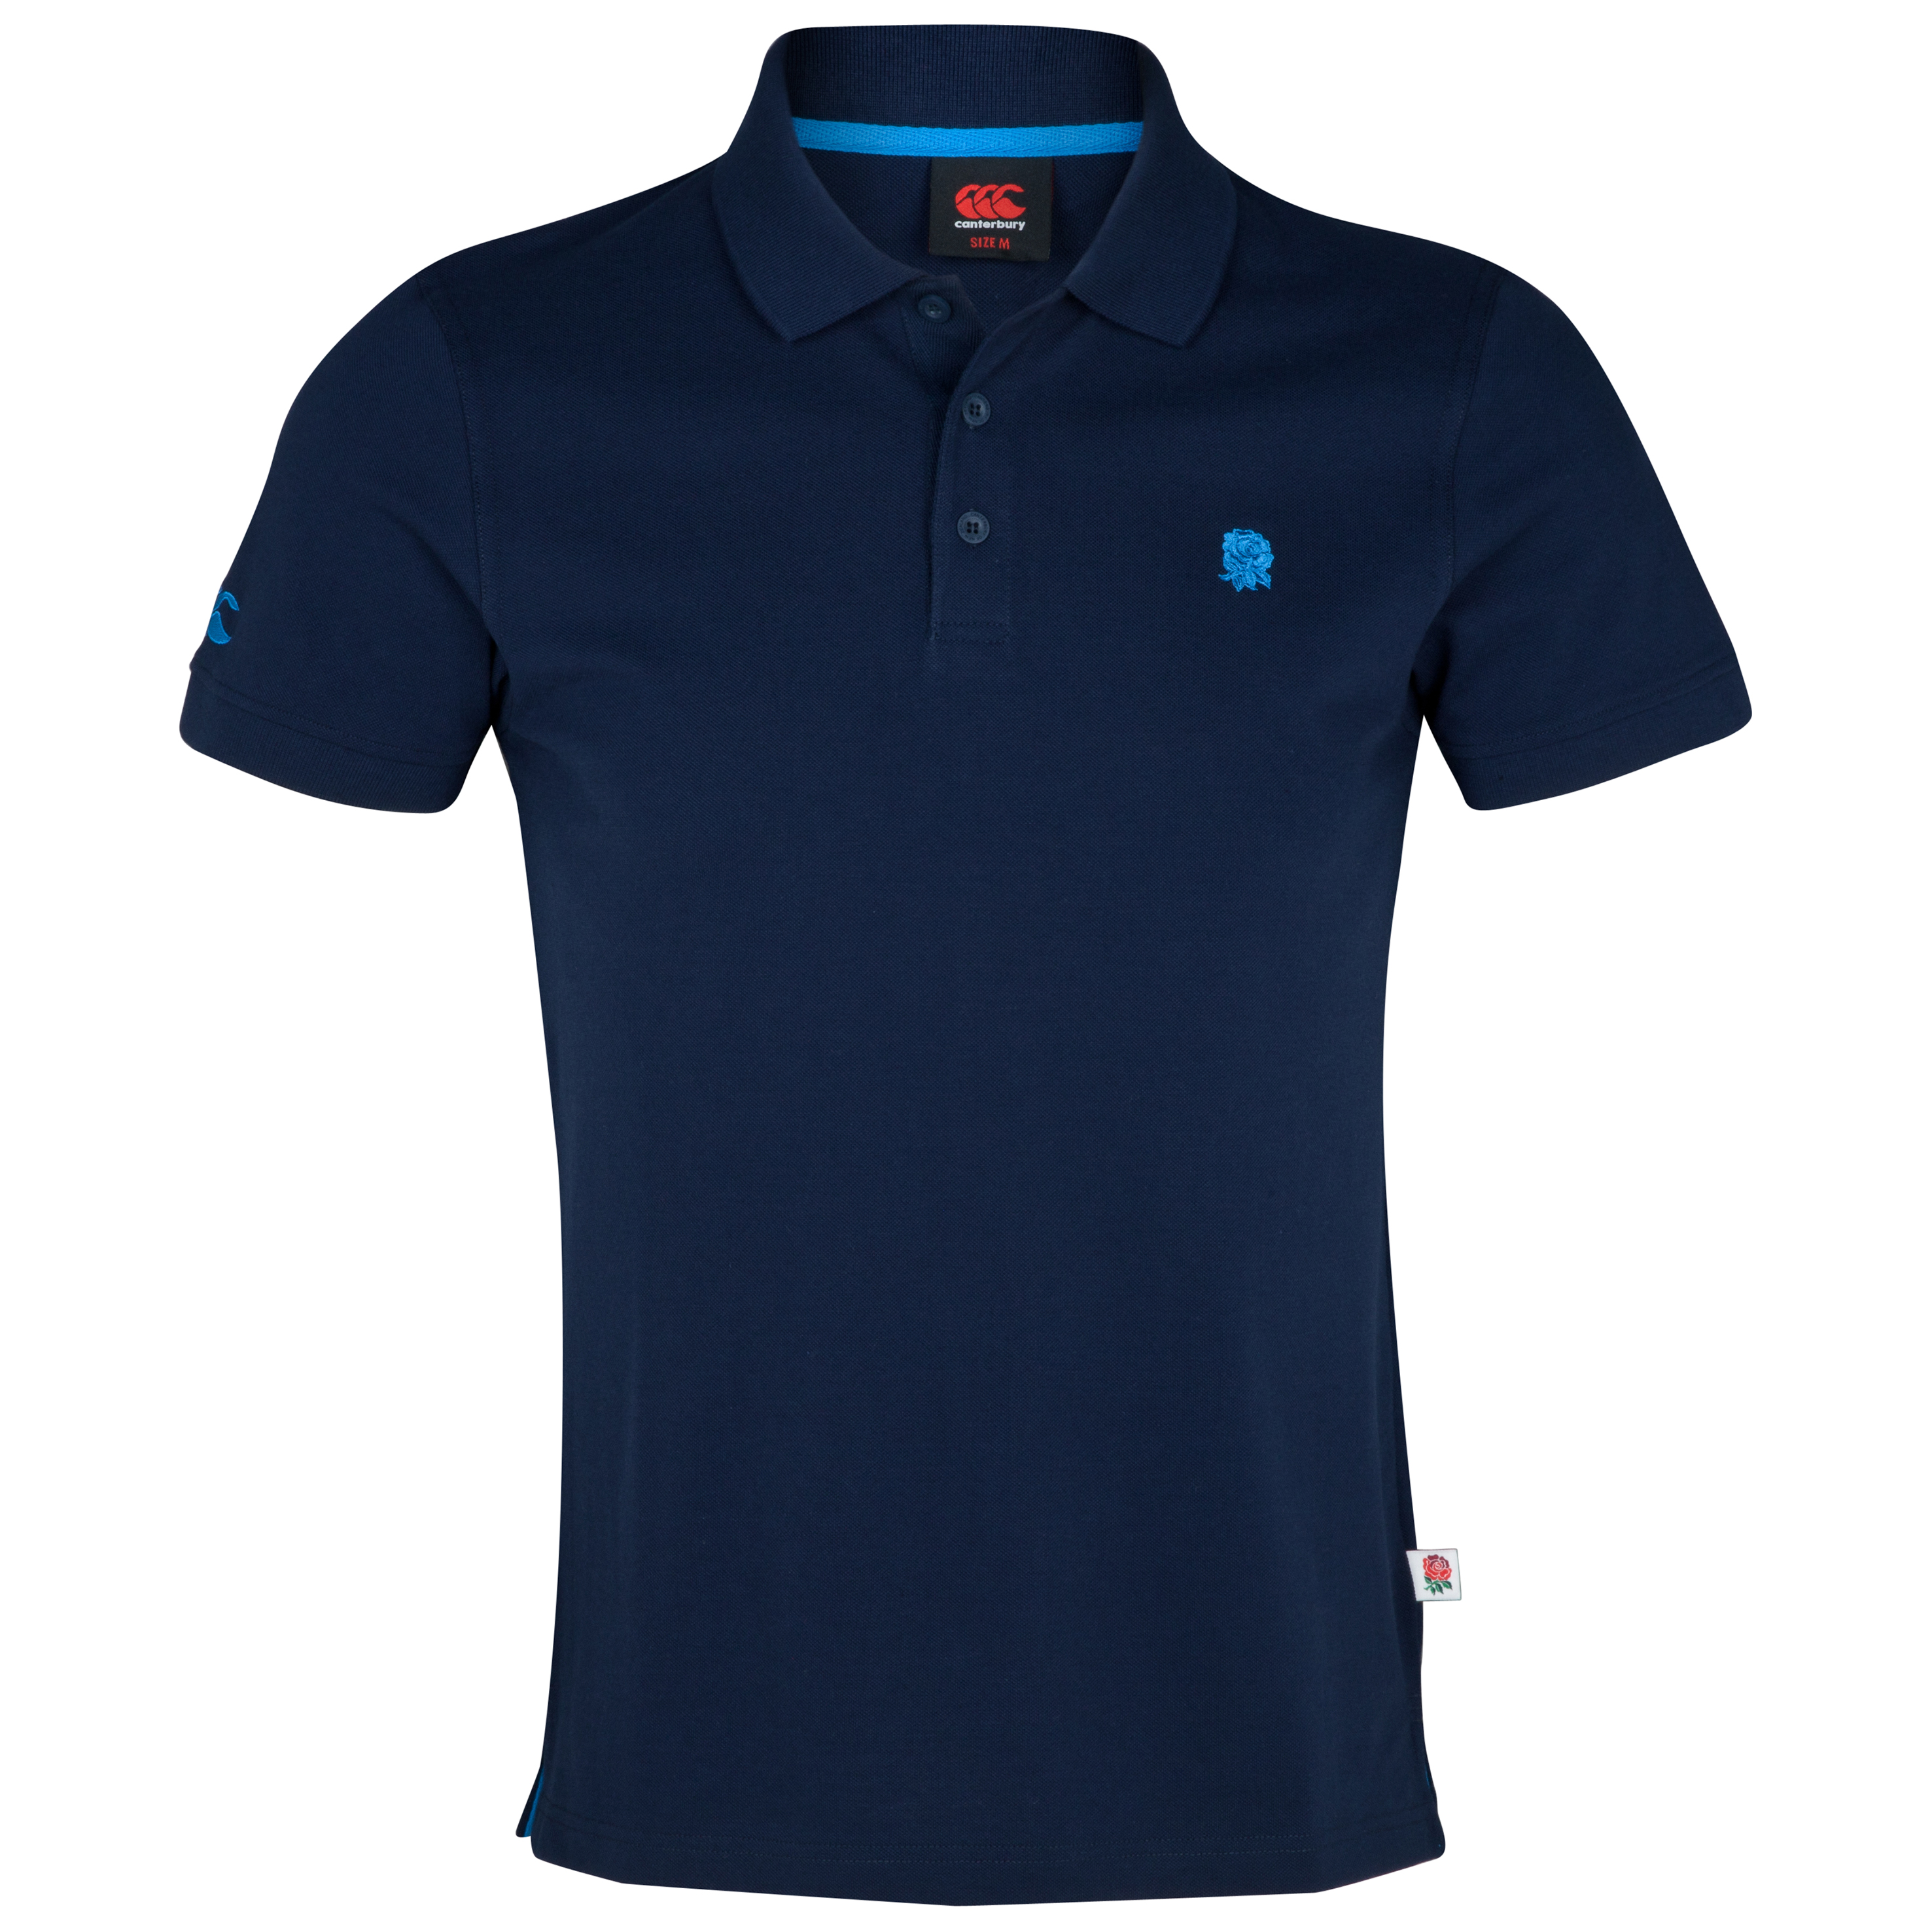 England Lifestyle Polo - Navy